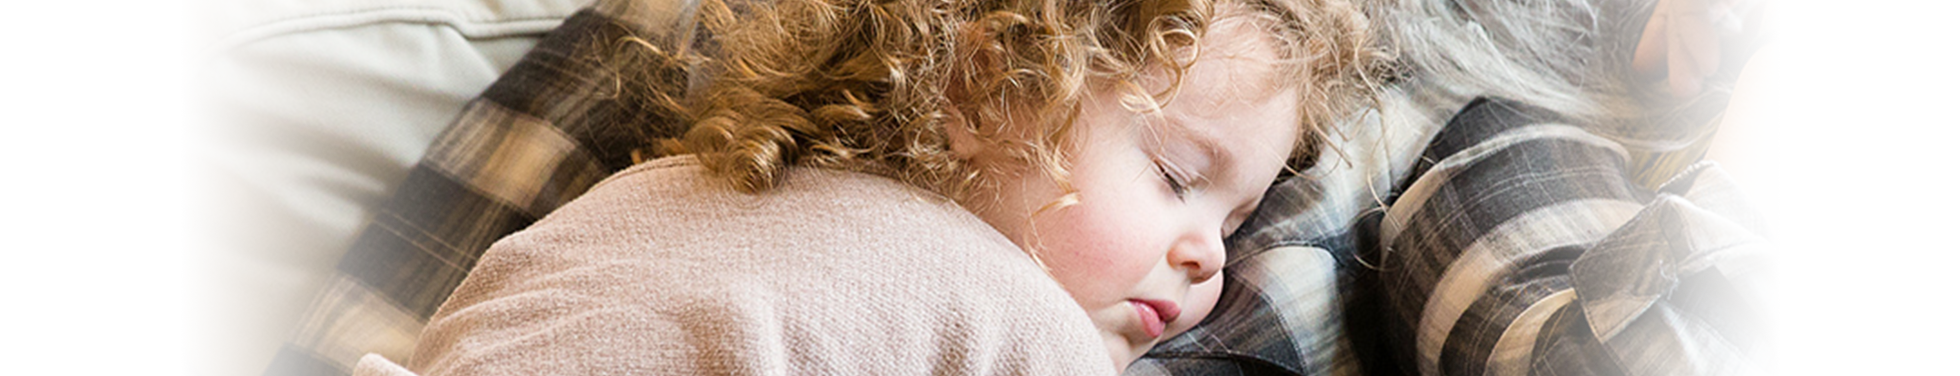 A little girl with curly hair asleep on an elderly woman